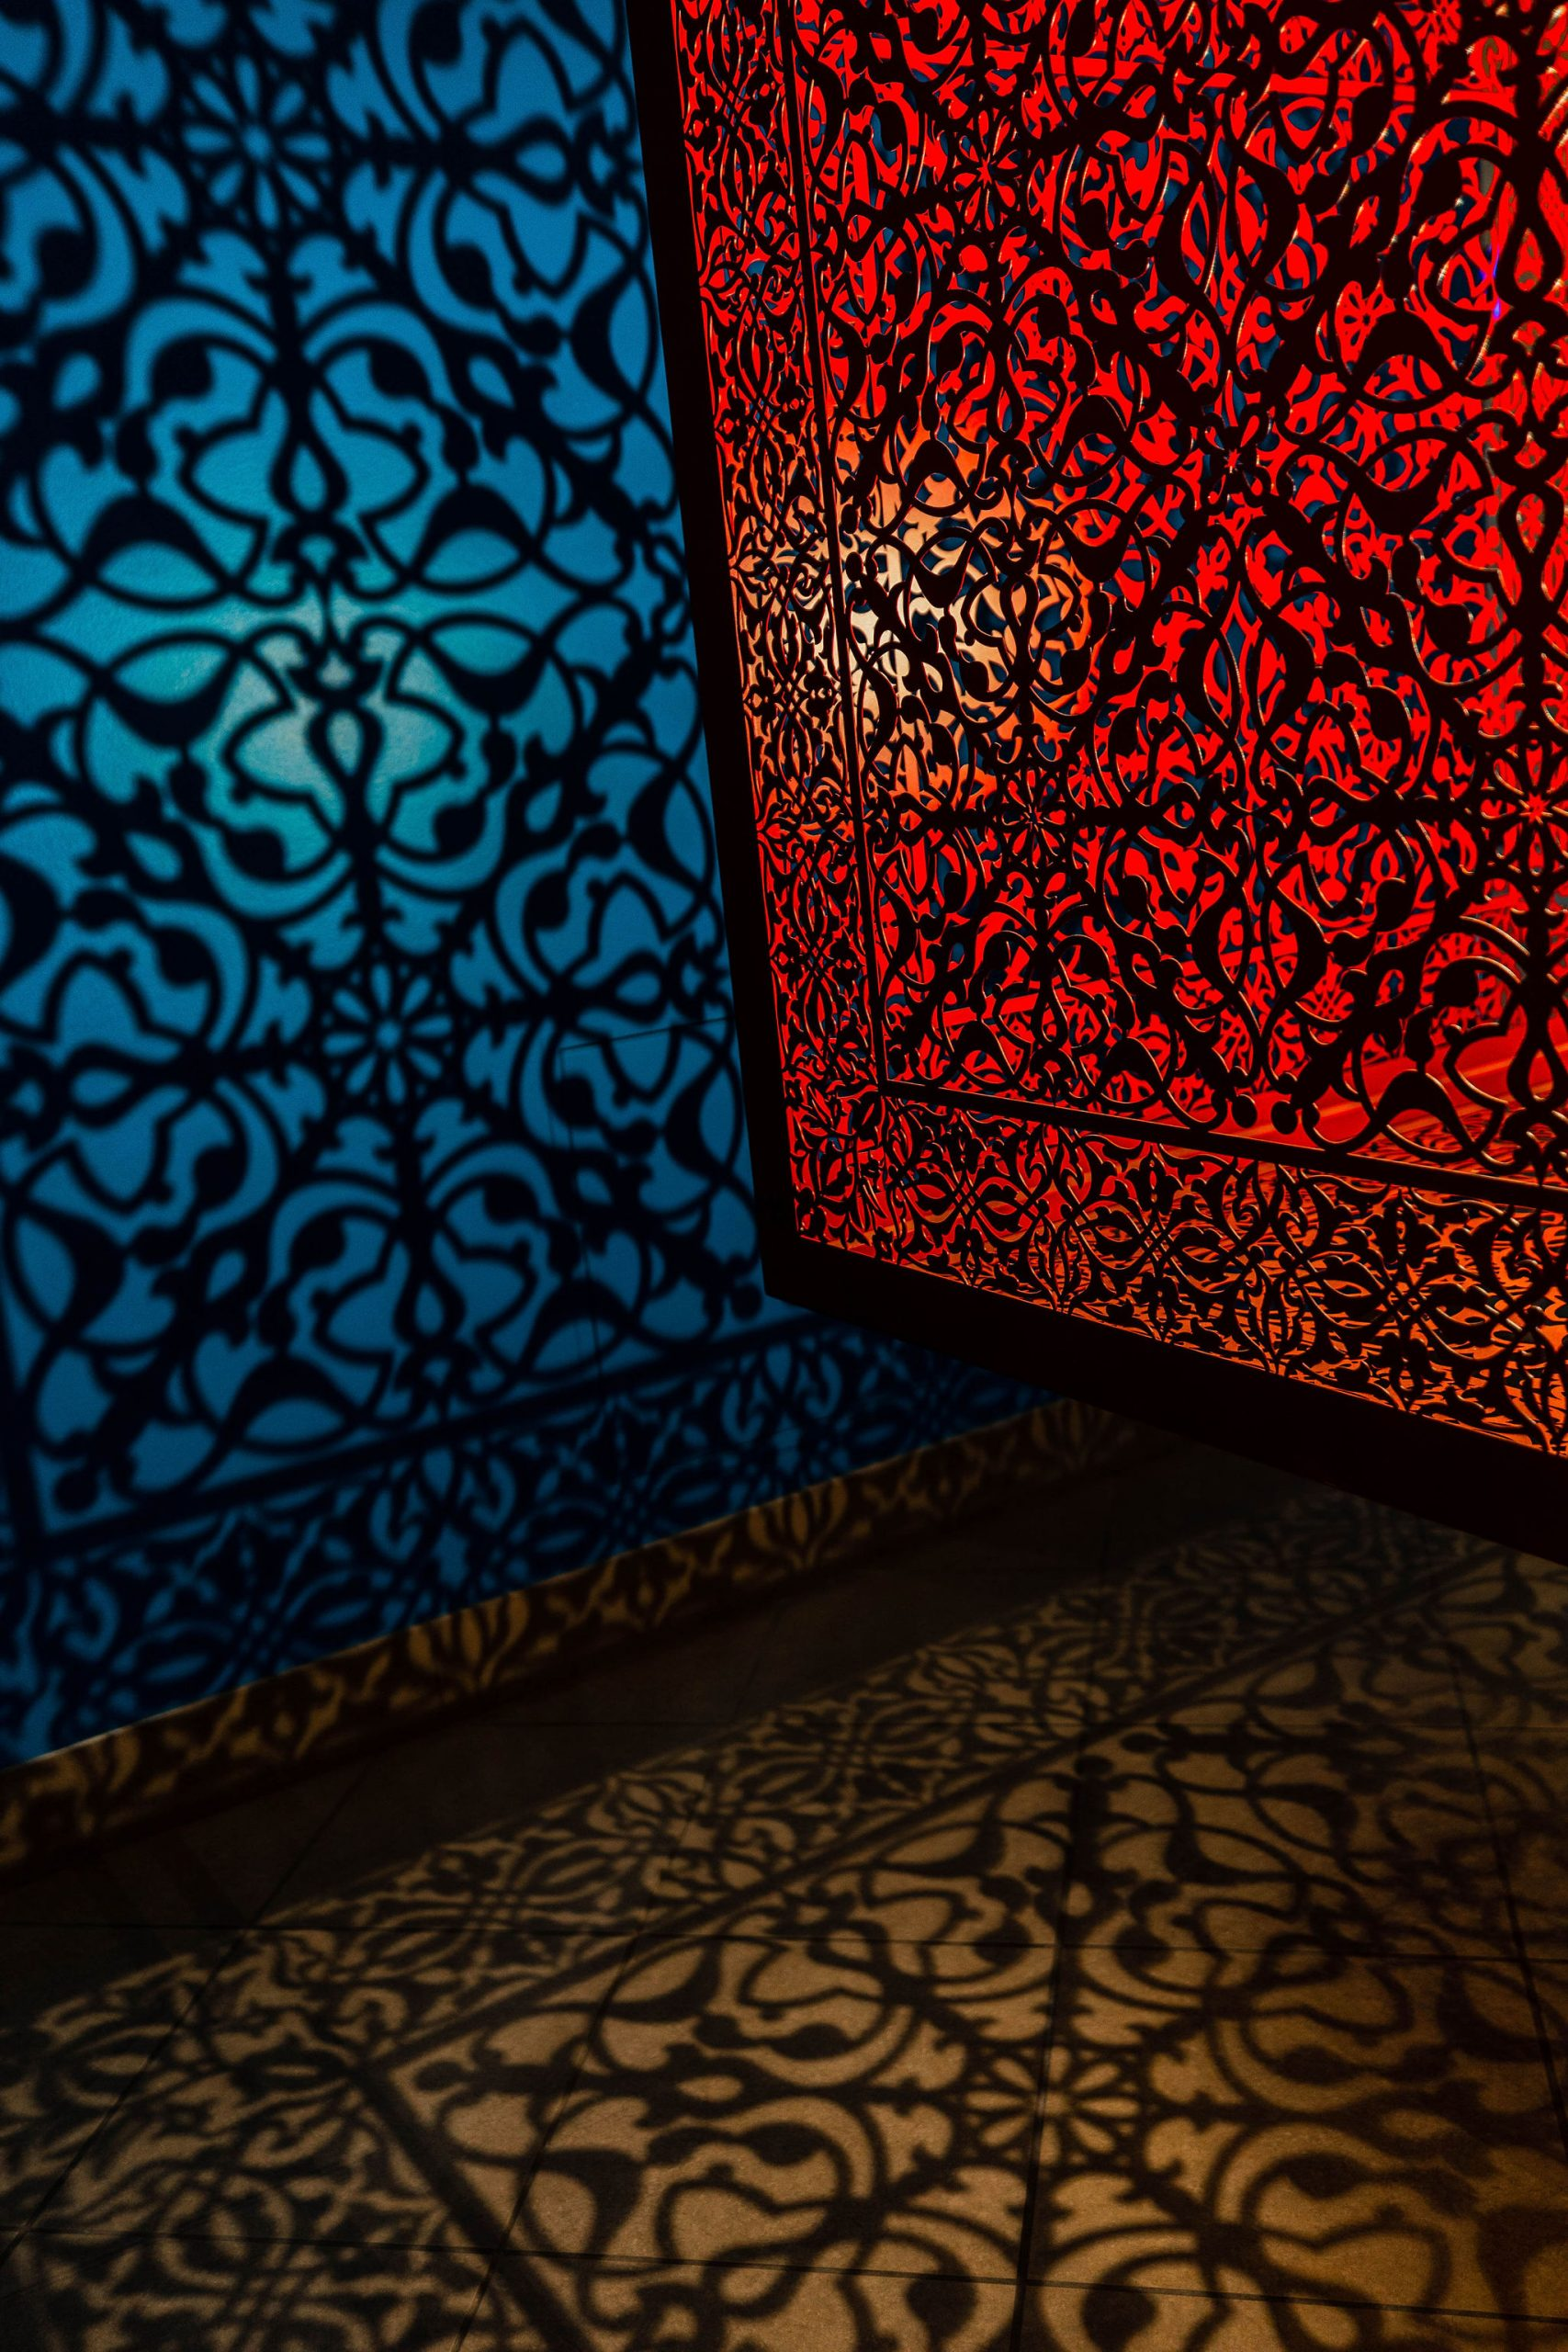 Anila Quayyum Agha Art Installation at Fashion Outlets of Chicago in Rosemont Illinois